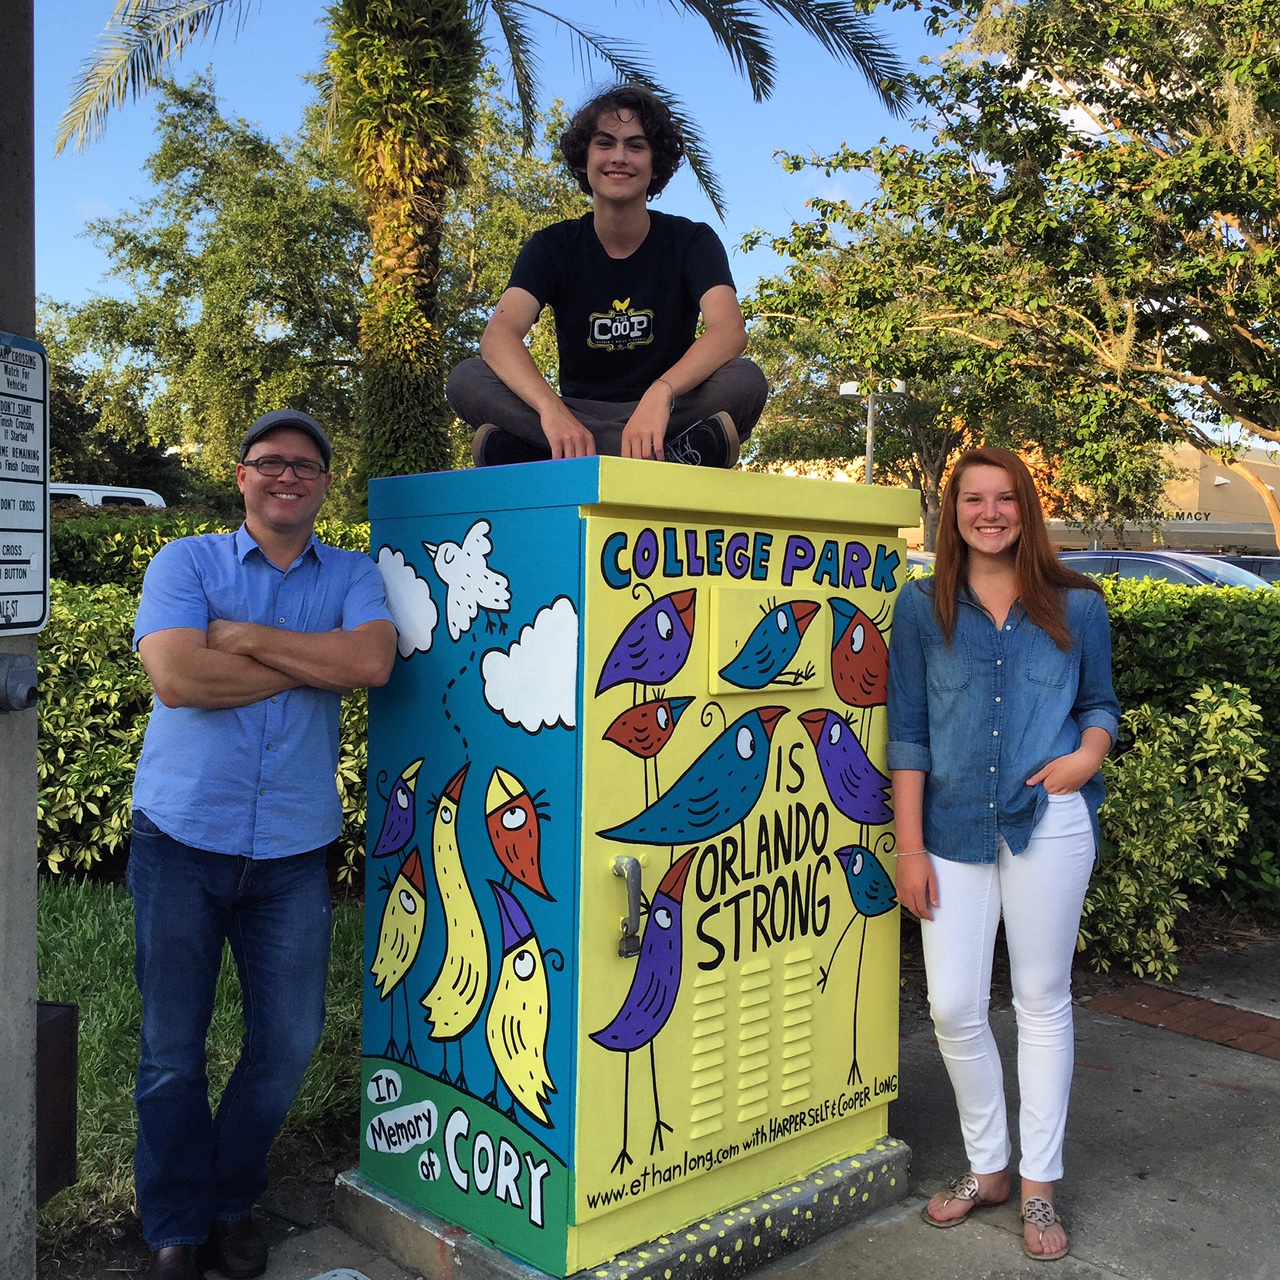 I work directly with the  College Park Partnership  in Orlando, Florida creating artwork for their utility box initiative. We have painted 9 boxes to date and will be repainting 3 more in the near future.